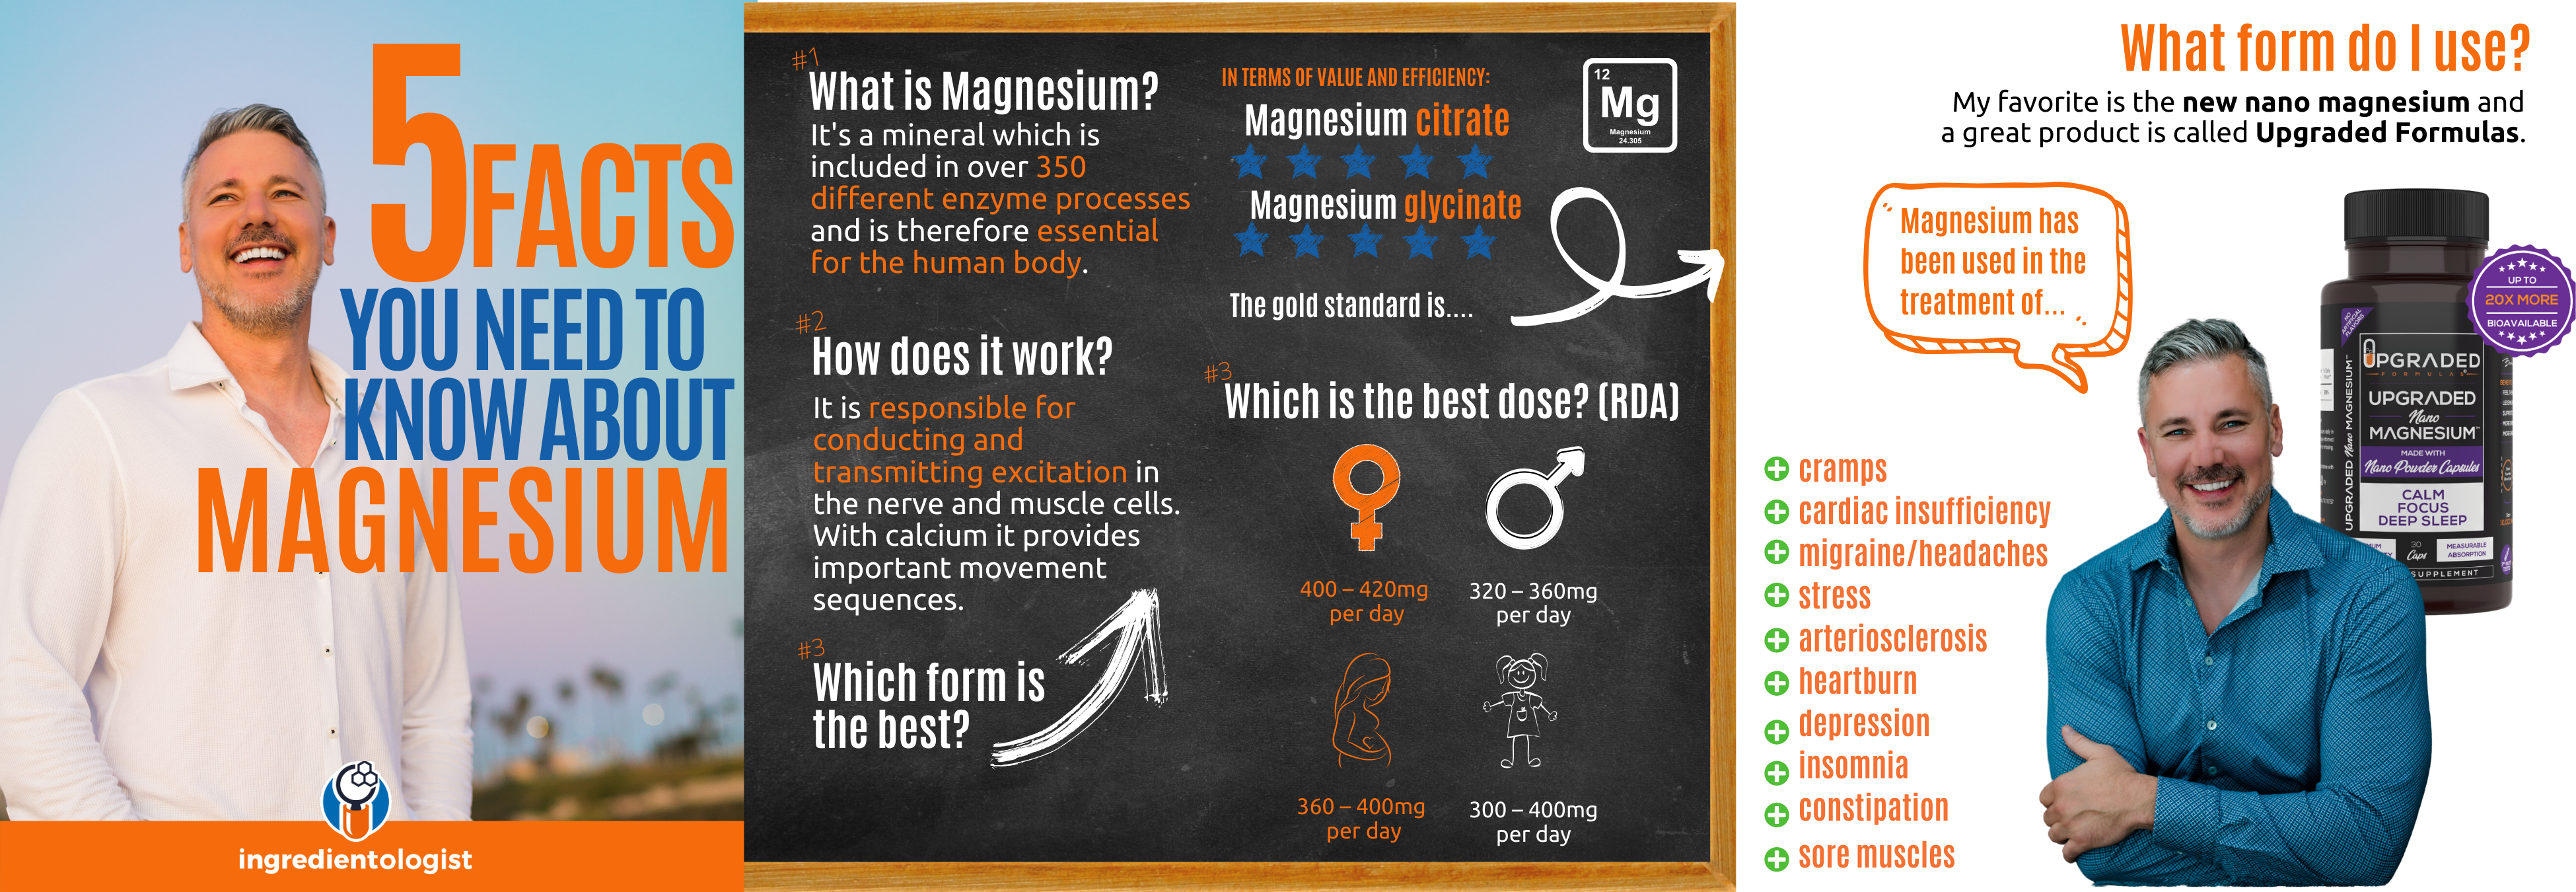 Facts about Magnesium